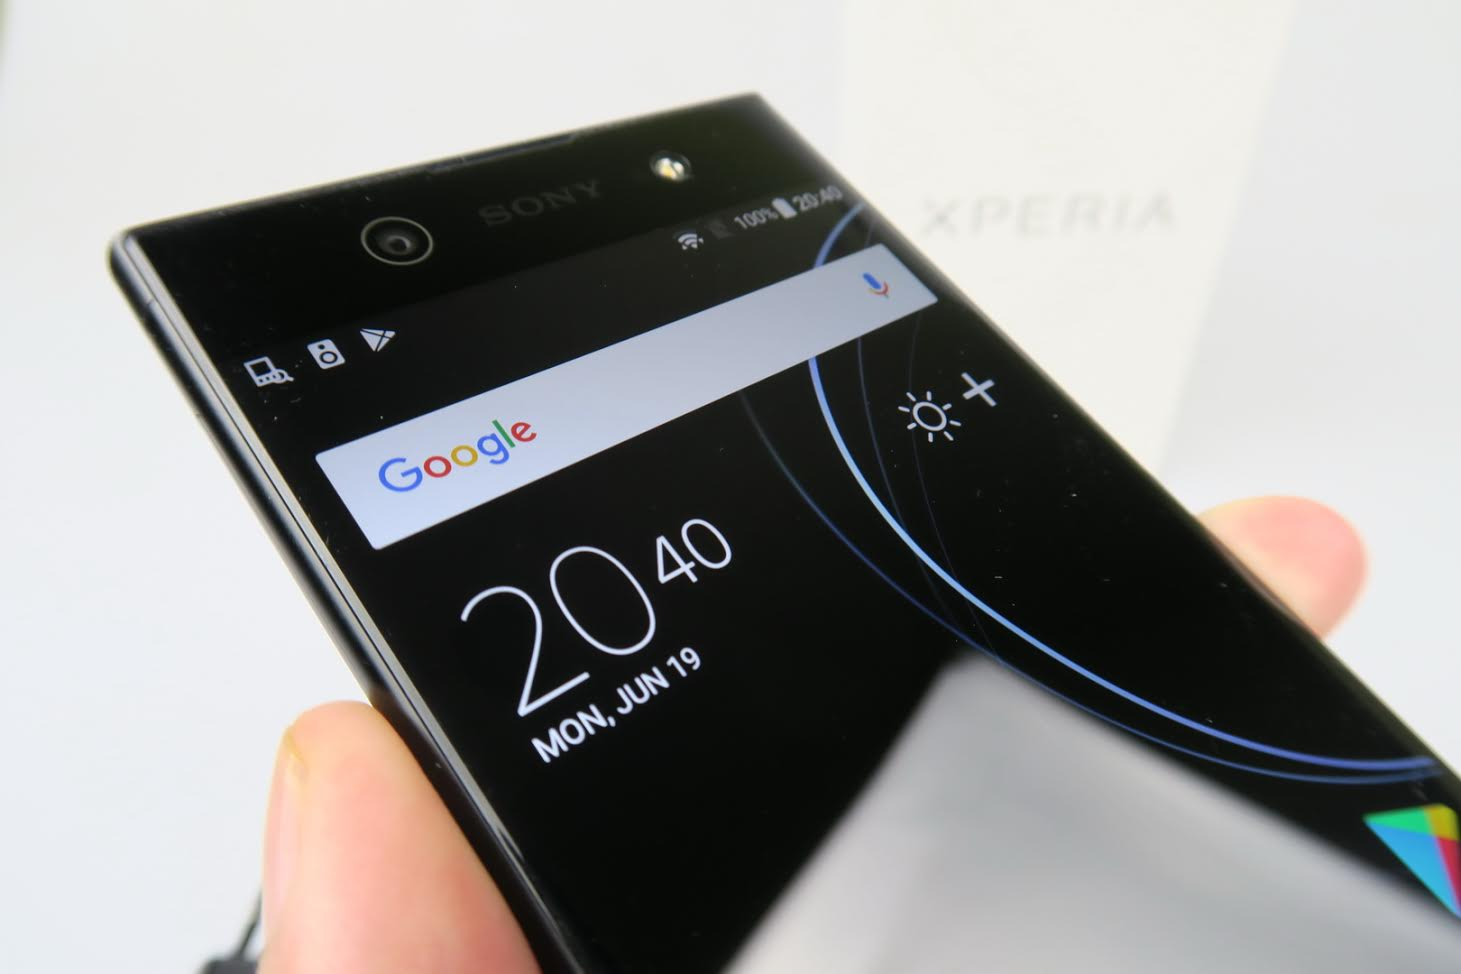 Sony xperia xa1 ultra unboxing 6 inch phablet with a penchant for advertisement tags sony xperia ccuart Gallery